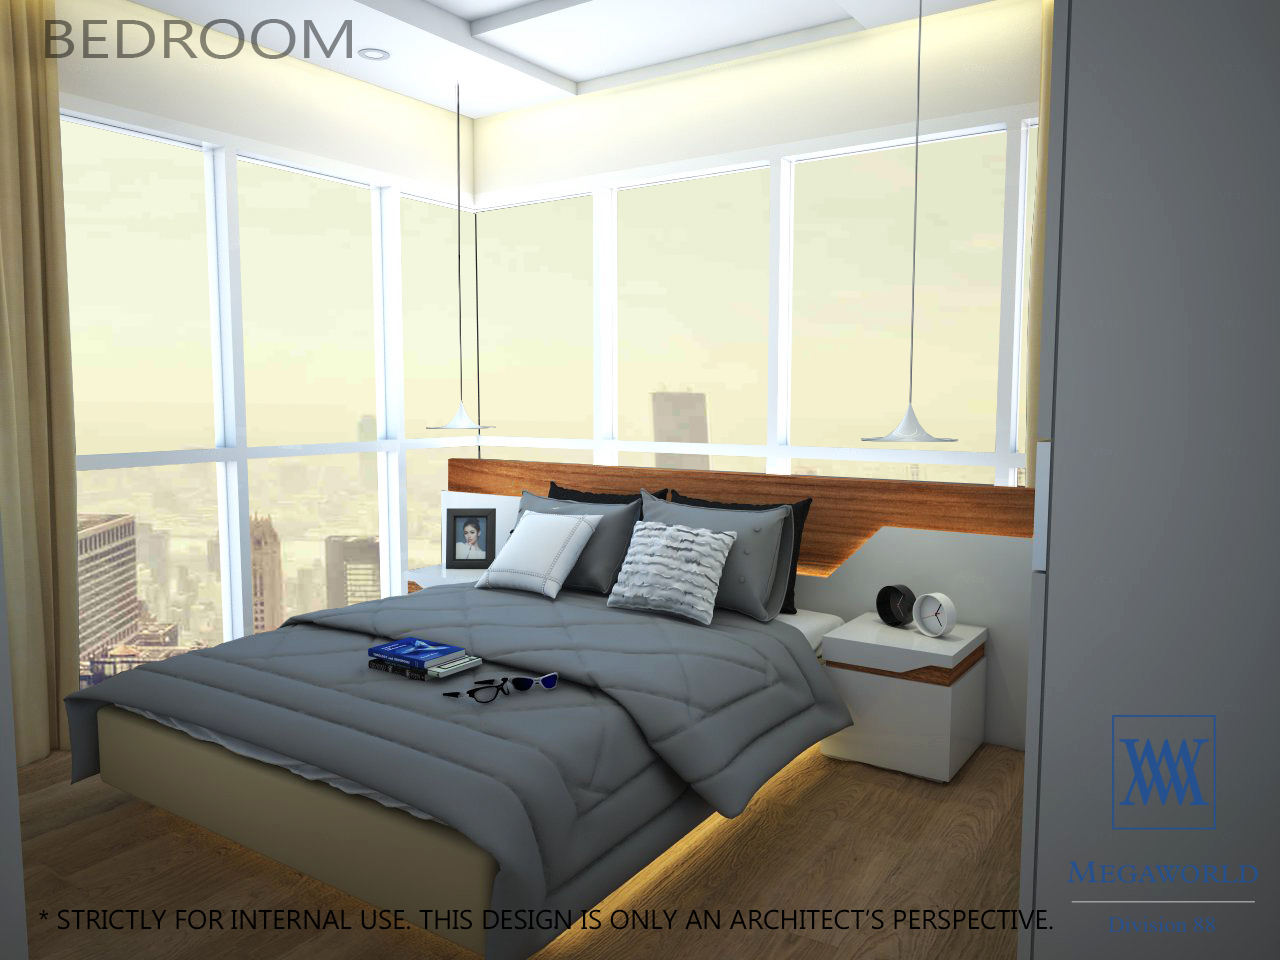 1 BEDROOM Condos For Sale Bgc Fort Bonifacio  ...